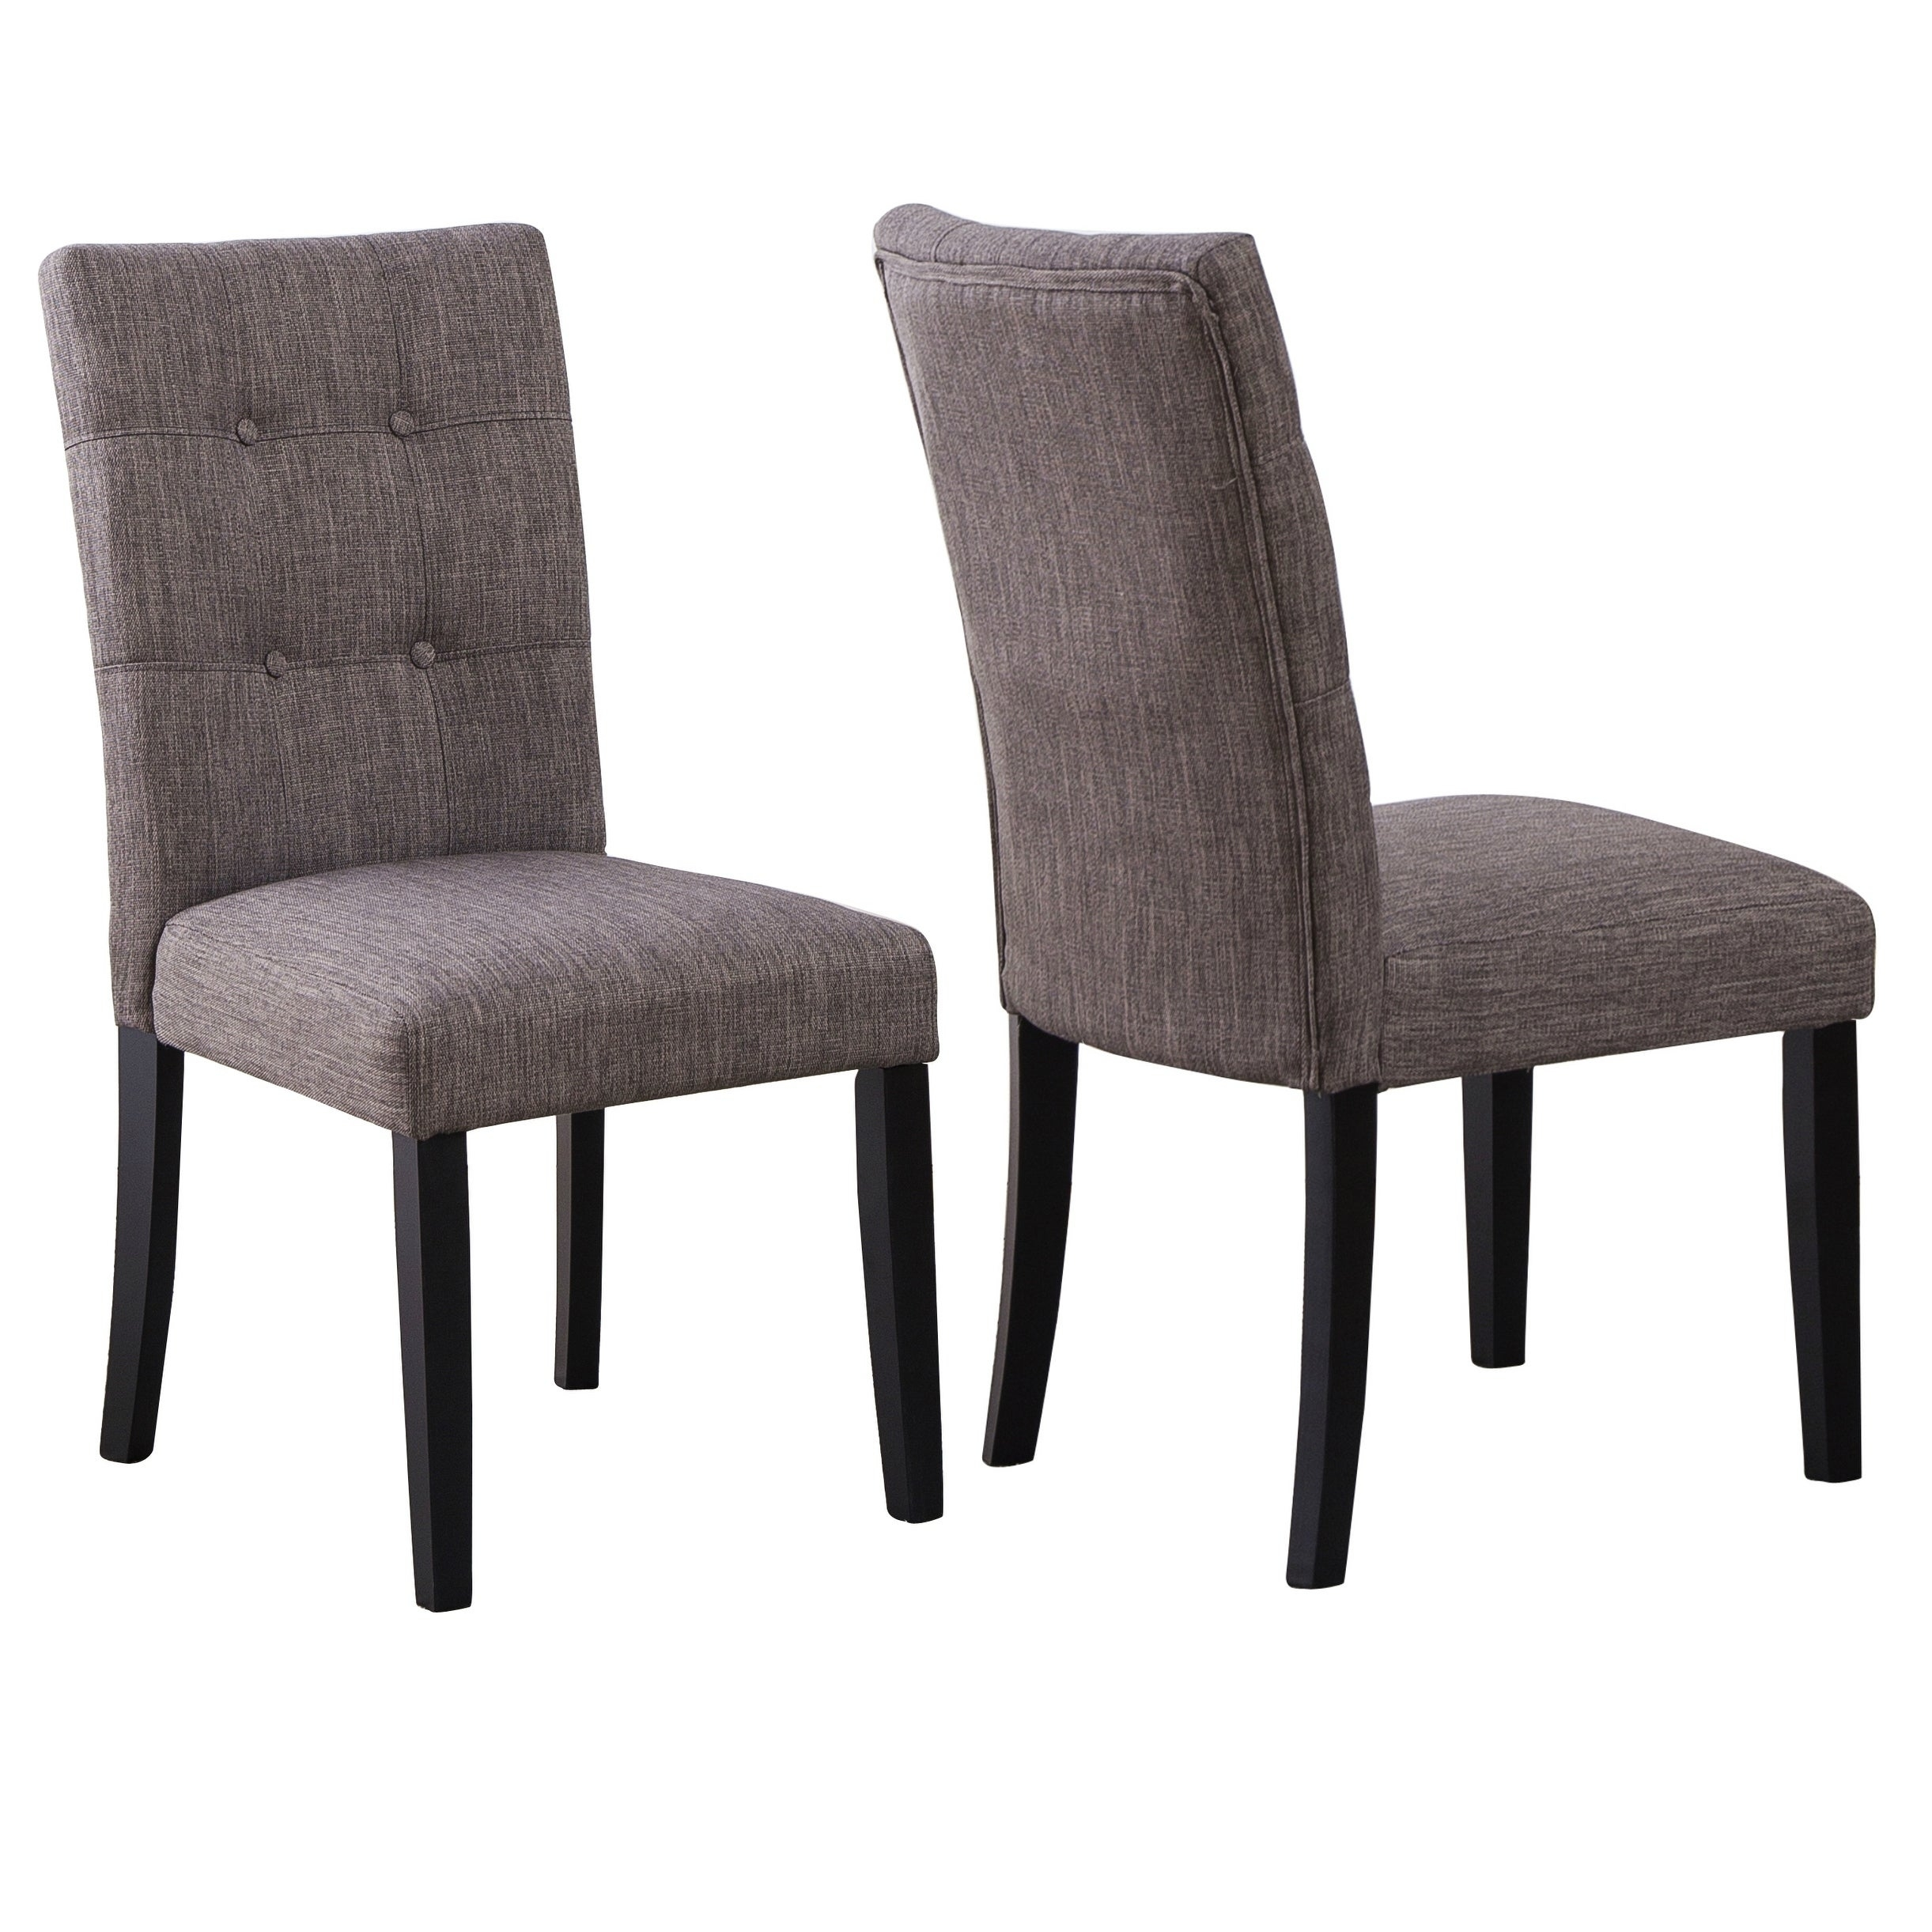 high back dark grey linen tufted upholstered dining chairs set of 2 na